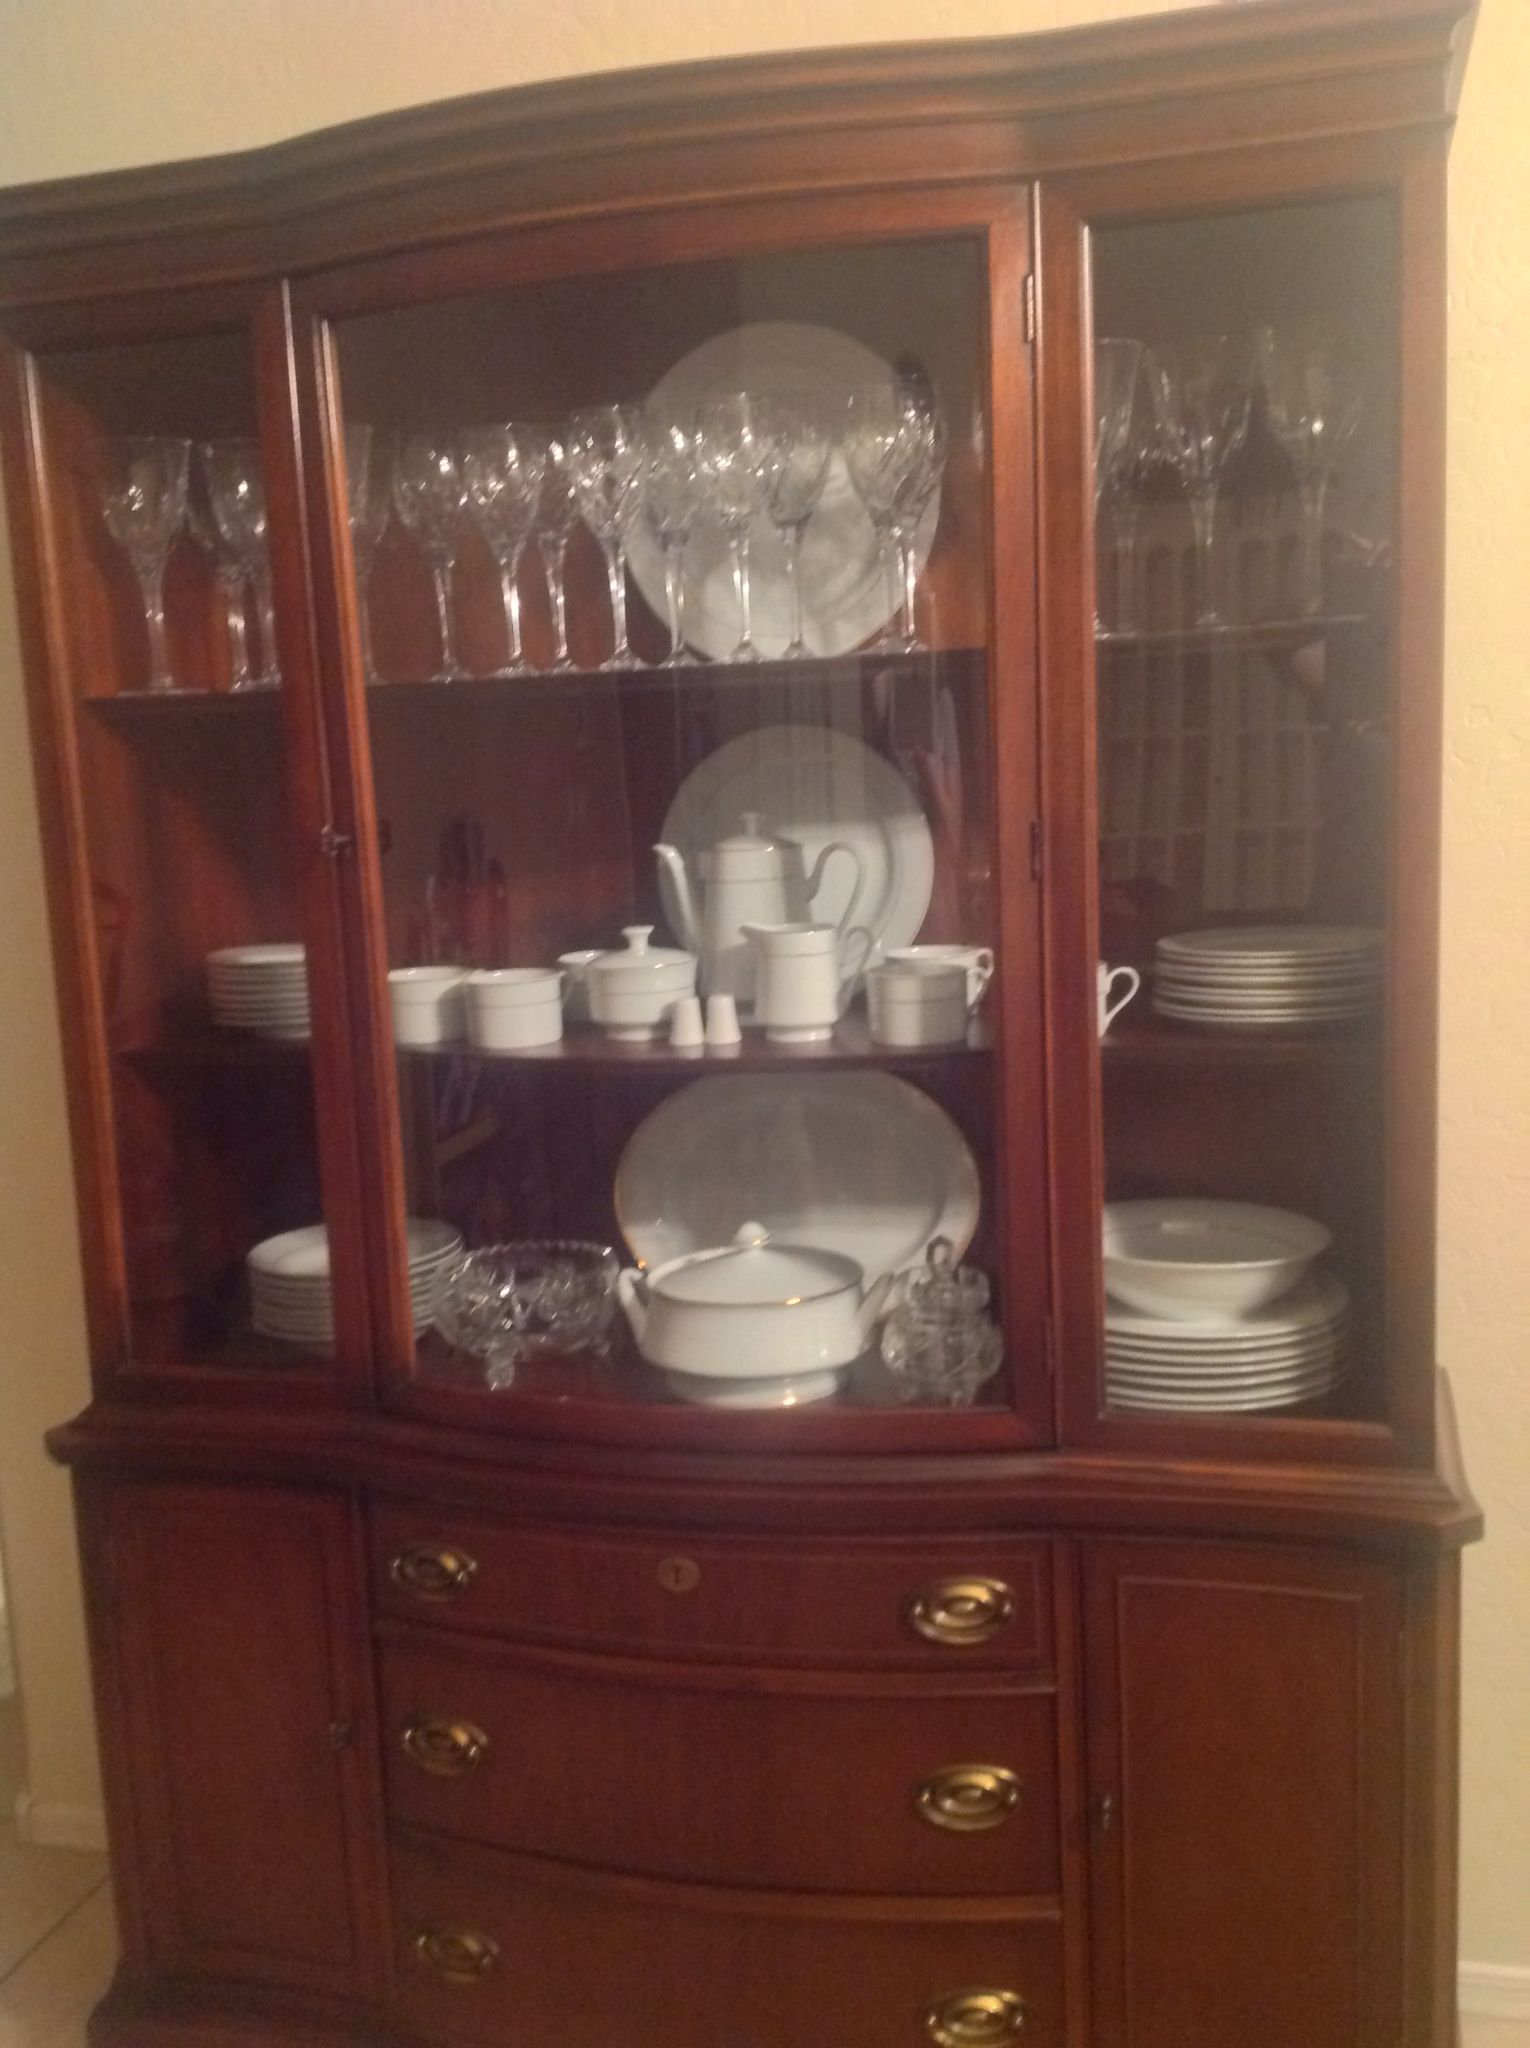 duncan fife dining room set | -dining-room-set-duncan-phyfe-1940s ...